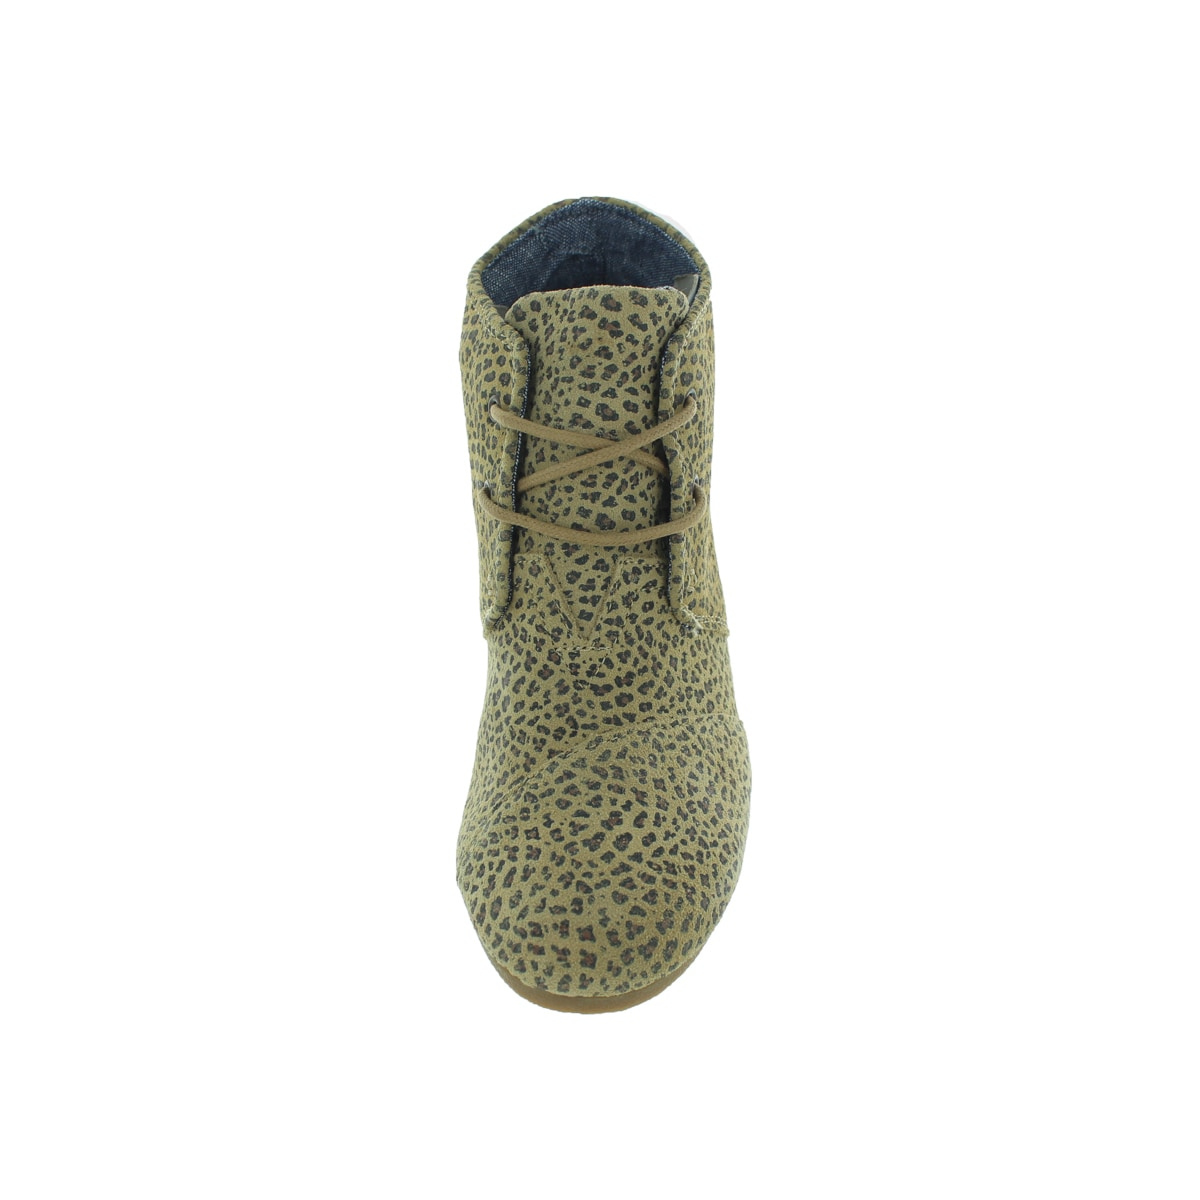 c2d968d4f85 Shop Toms Women s Desert Wedge Cheetah Suede Casual Shoe - Free Shipping  Today - Overstock - 13344182